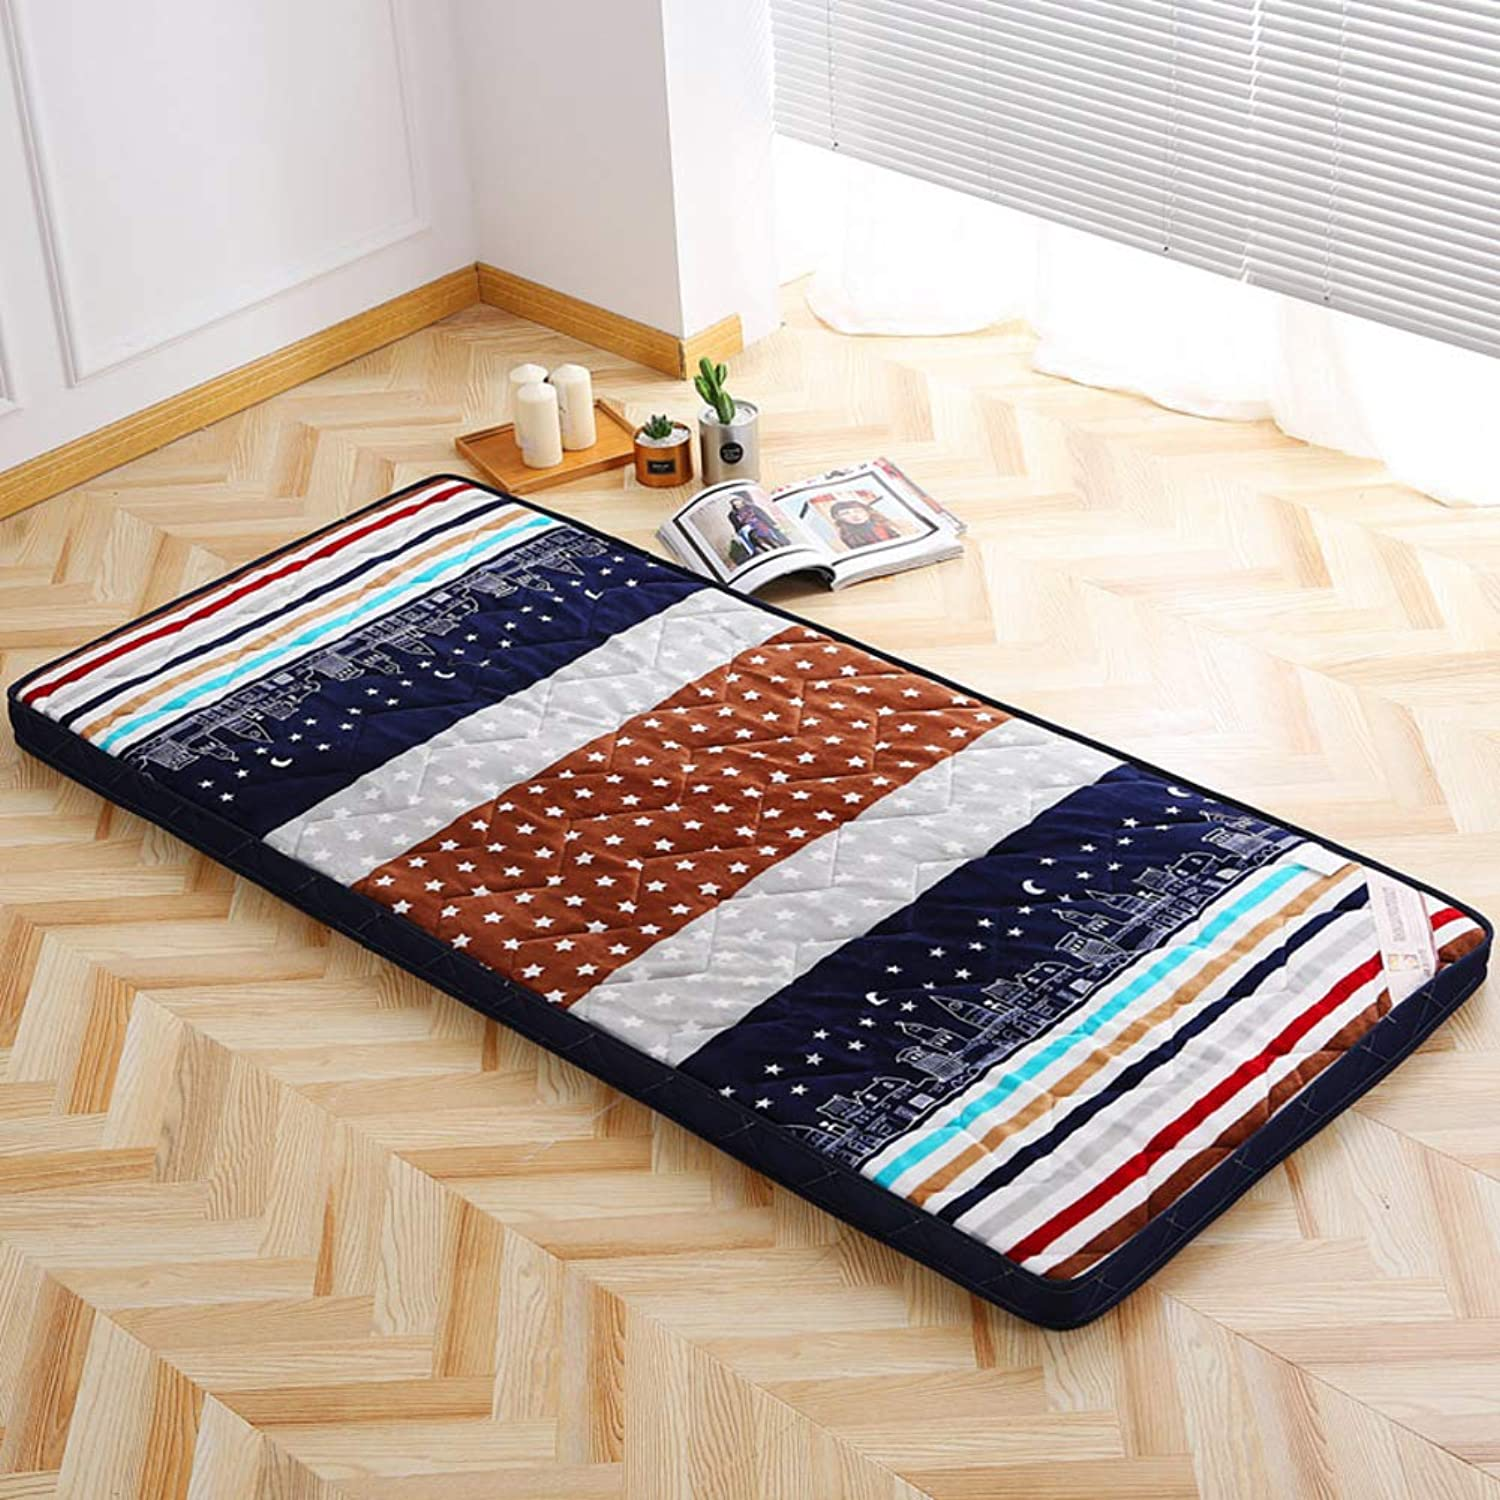 Sleeping Matt Mat,matt Mat,Bed Mattress Student Single Mattress,Dormitory Floor Tatami-h 90x200cm(35x79inch)